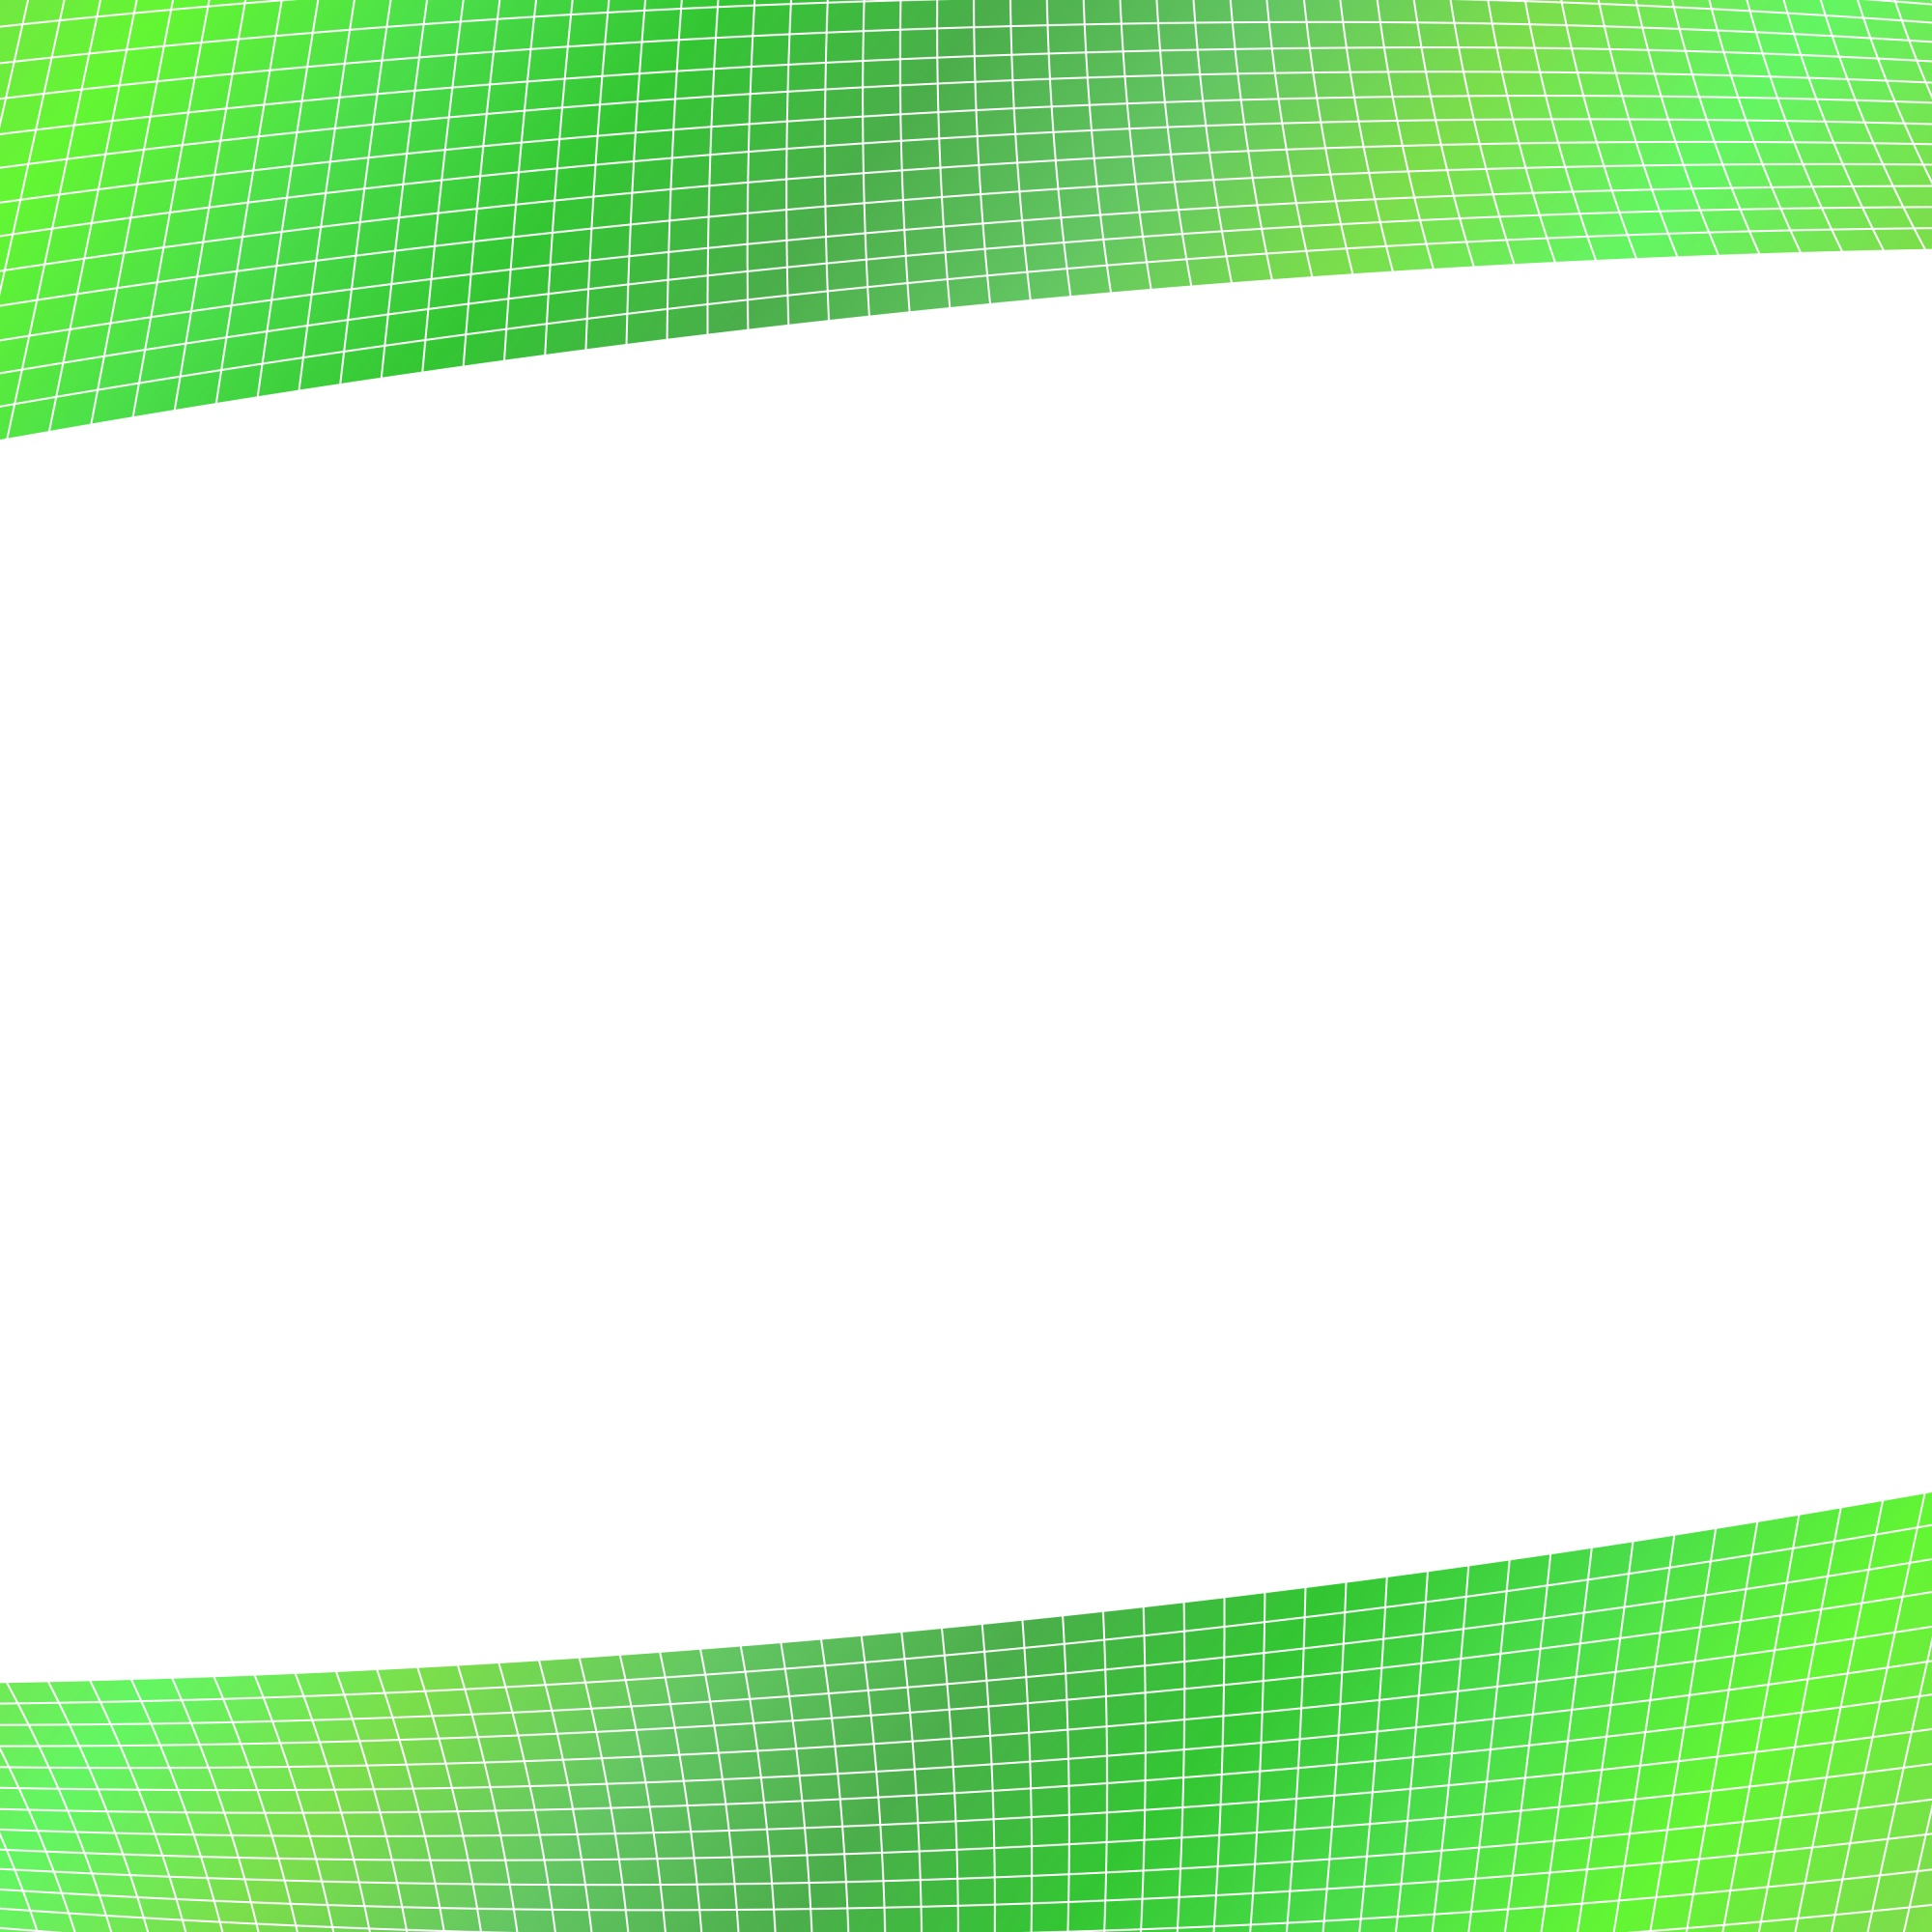 Green geometrical grid background - design from curved angular stripes